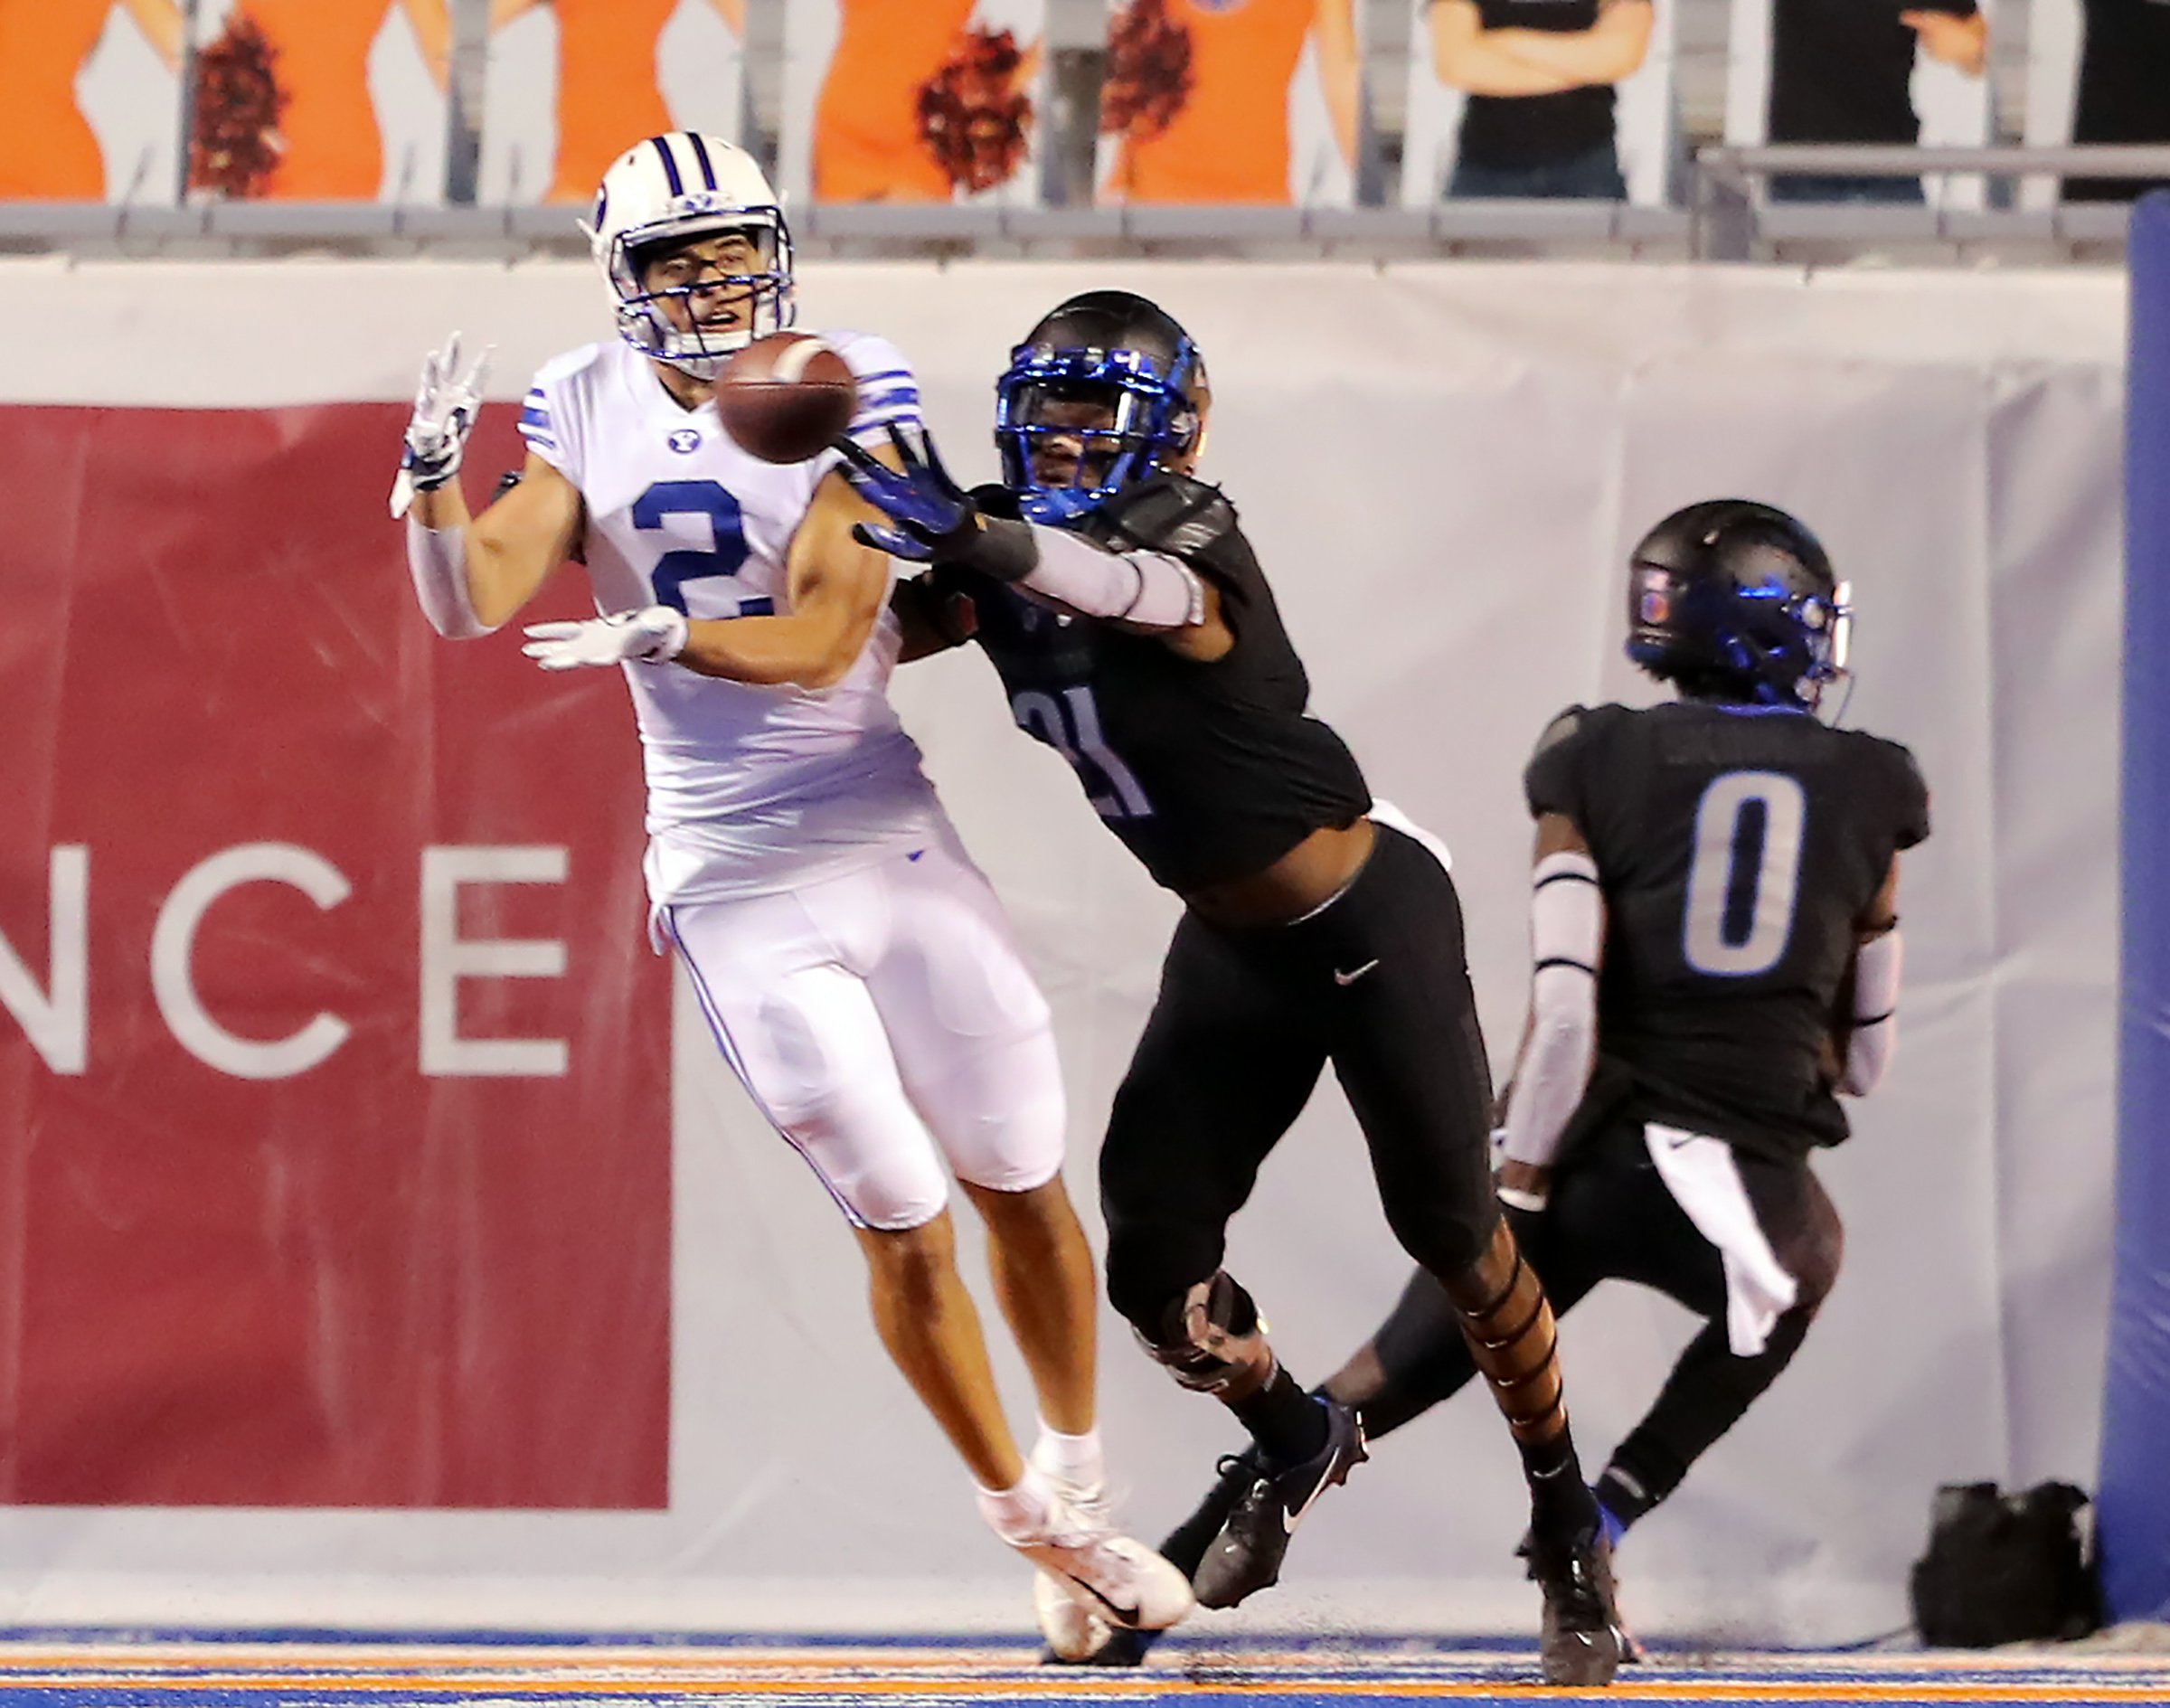 BYU wide receiver Neil Pau'u makes a catch for a two-point conversion against Boise State at in Boise on Friday, Nov. 6, 2020.